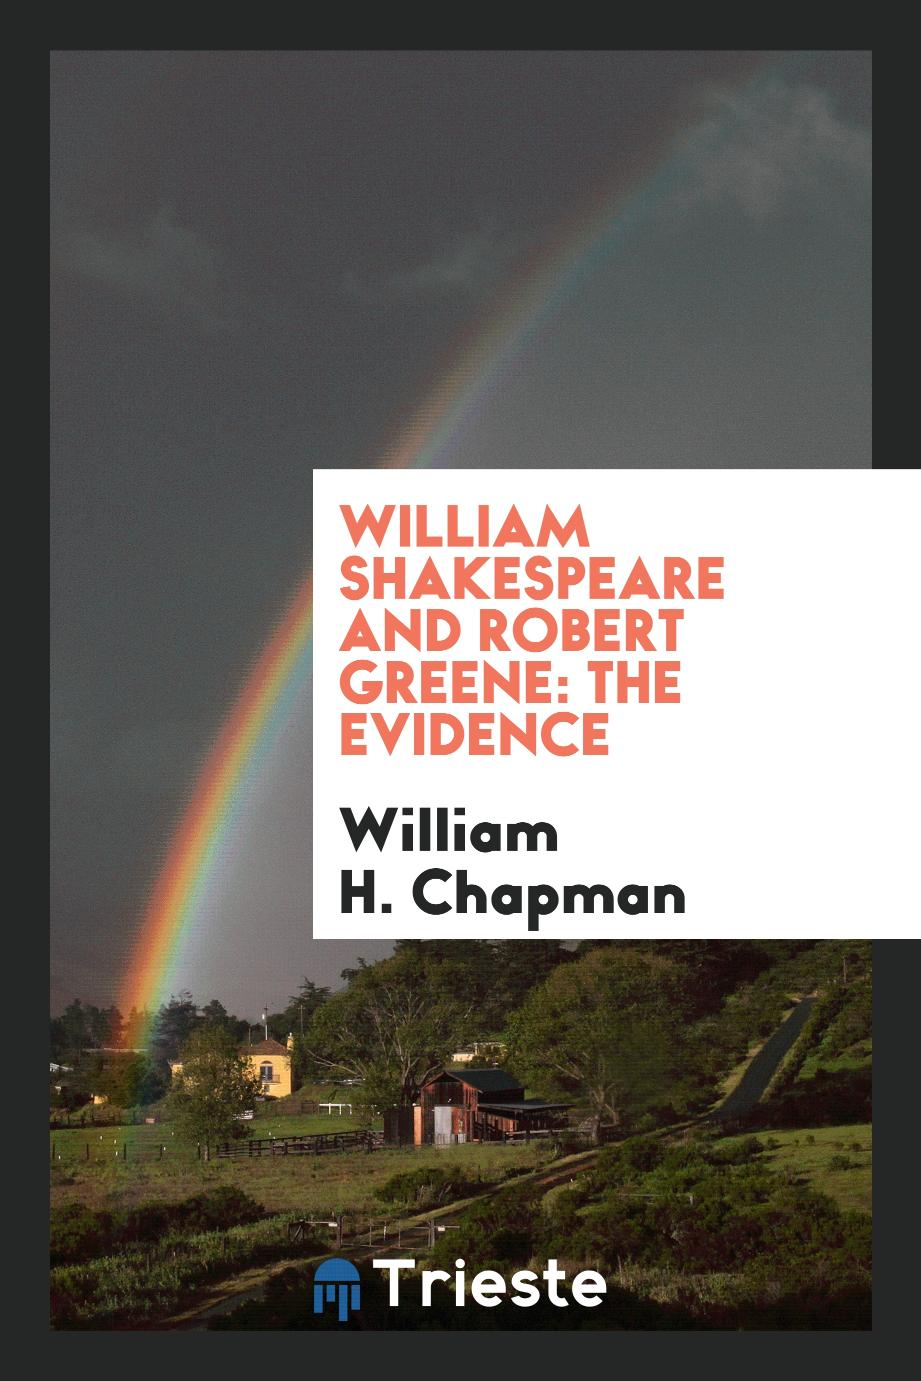 William Shakespeare and Robert Greene: the evidence